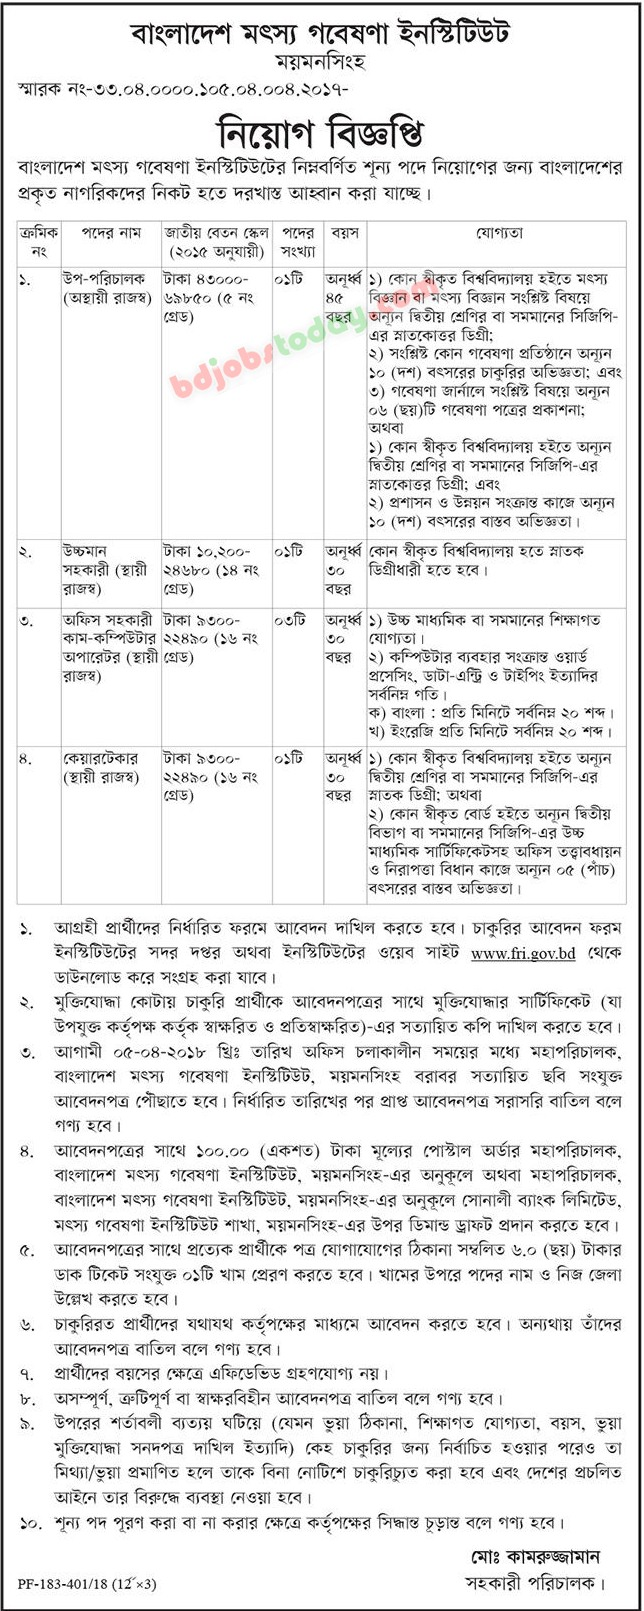 Bangladesh Fisheries Research Institute (BFRI) jobs